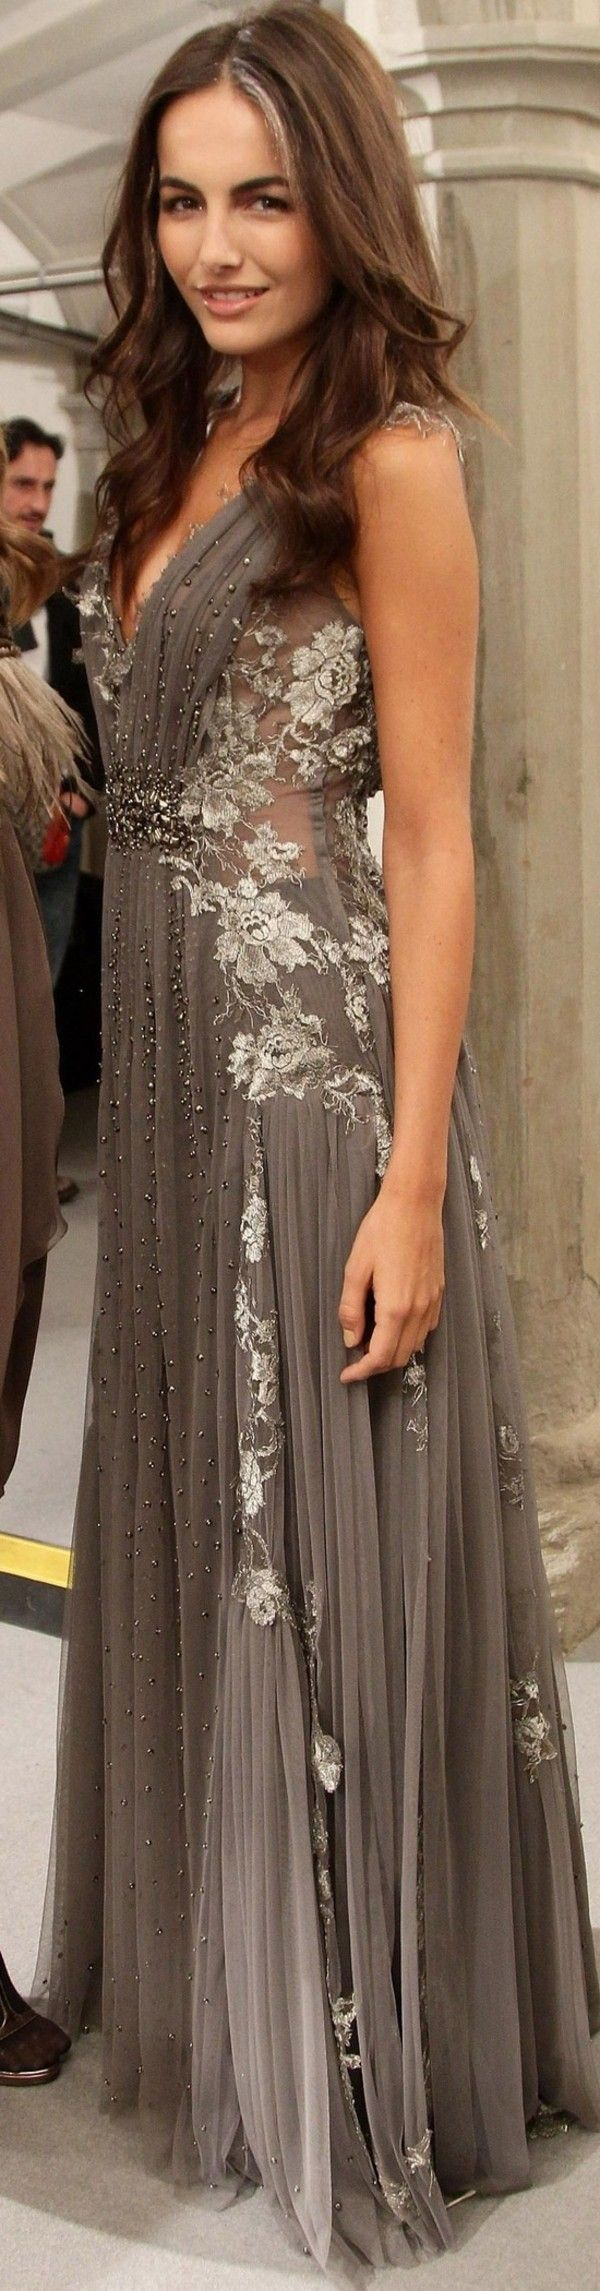 Natural coloured elegant dress. Gorgeous, except I wish it wasn't so bare.